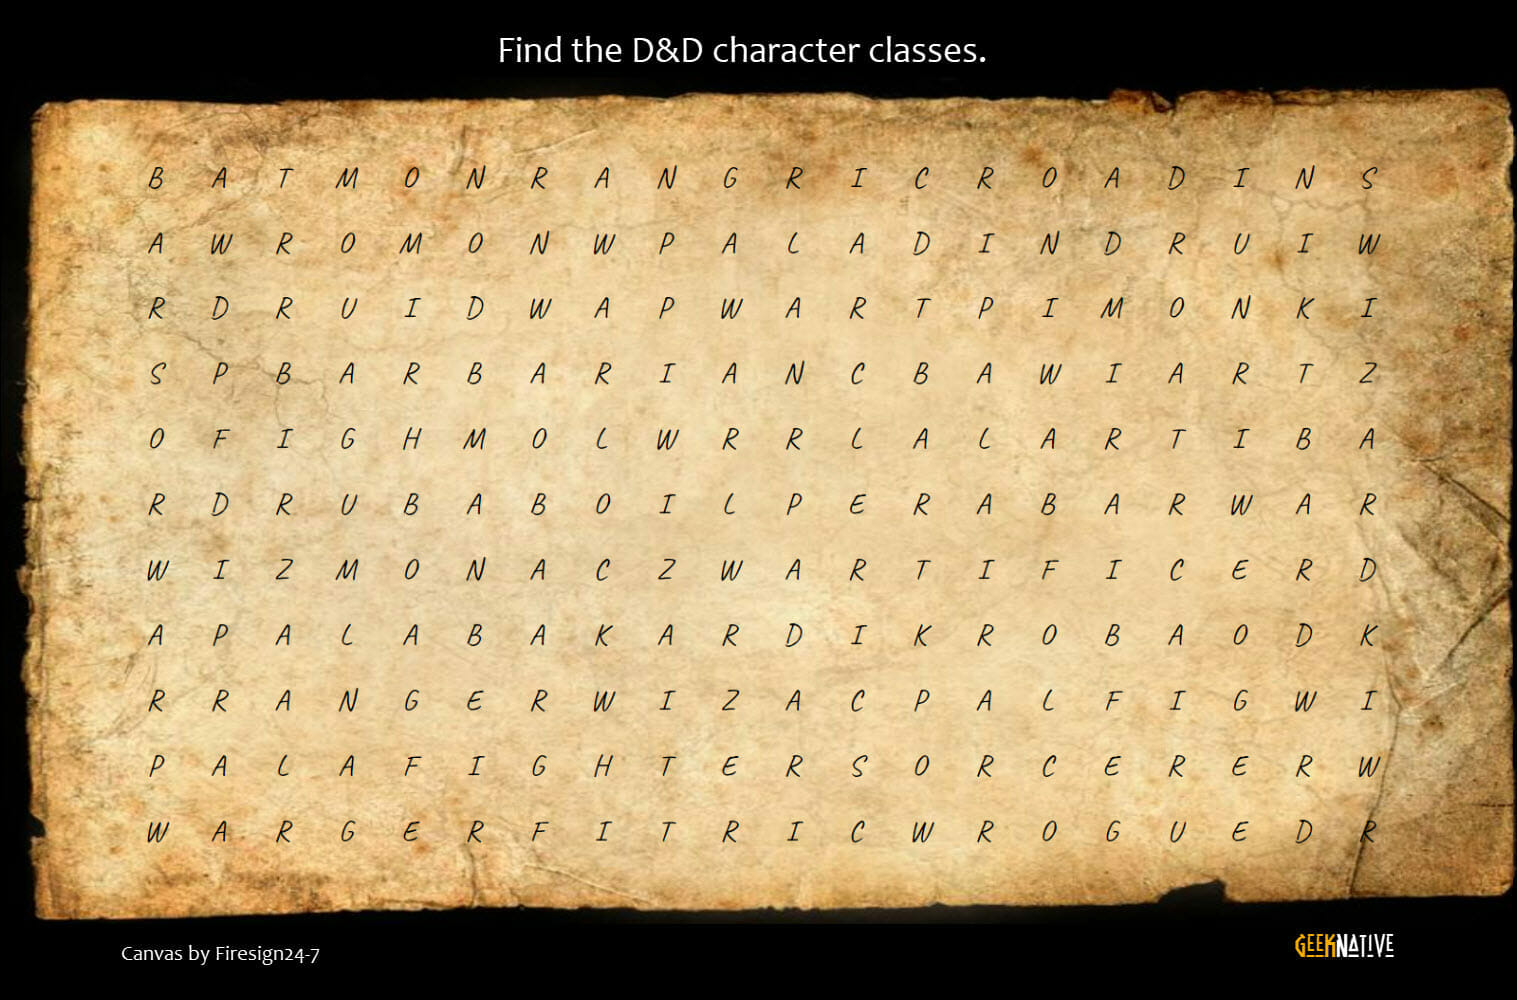 Character class search